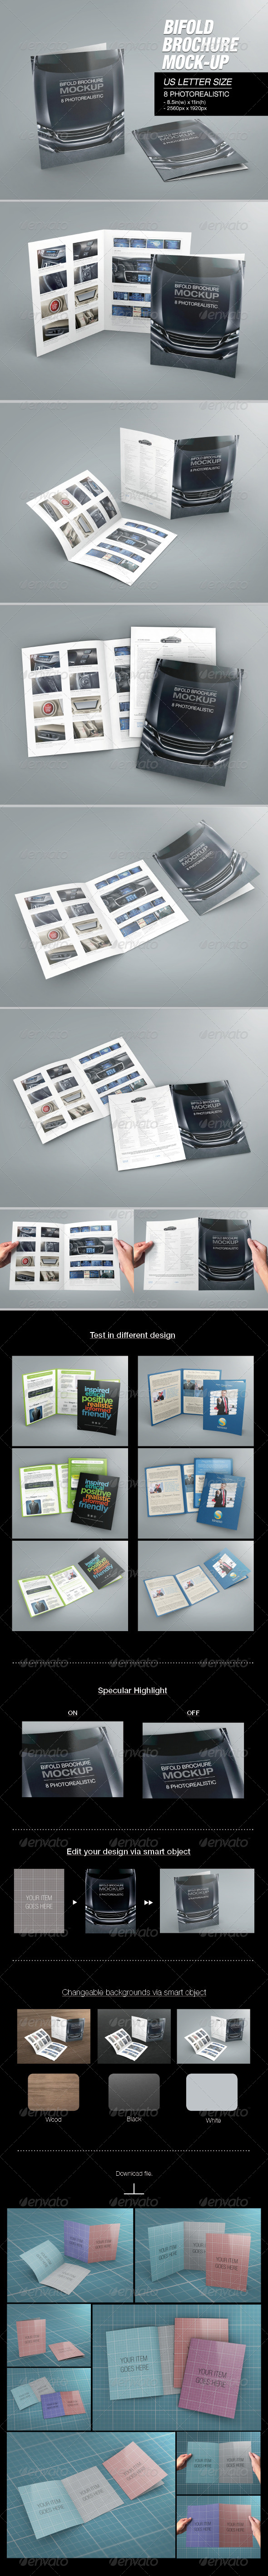 GraphicRiver Bifold Brochure Mock-up 02 6885783